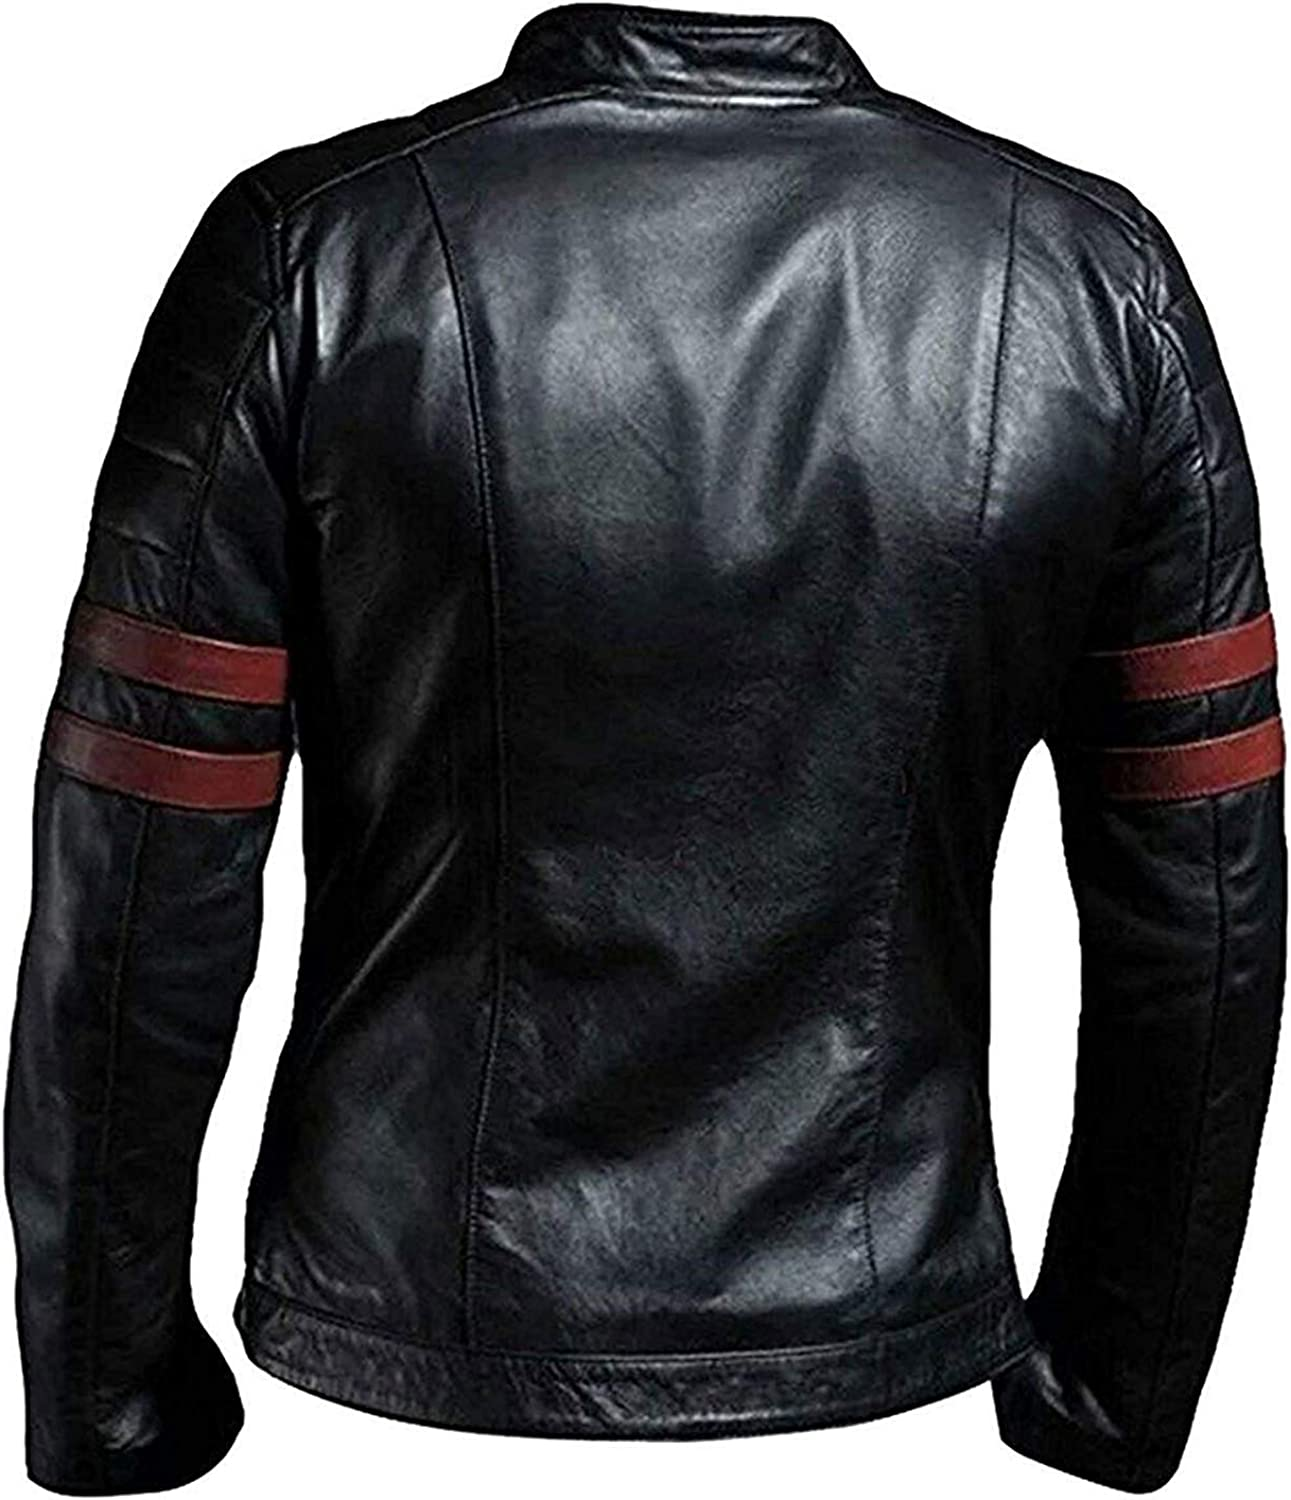 Men Fight Club Brad Pitt Tyler Durden Retro Classic Style Black Leather Jacket